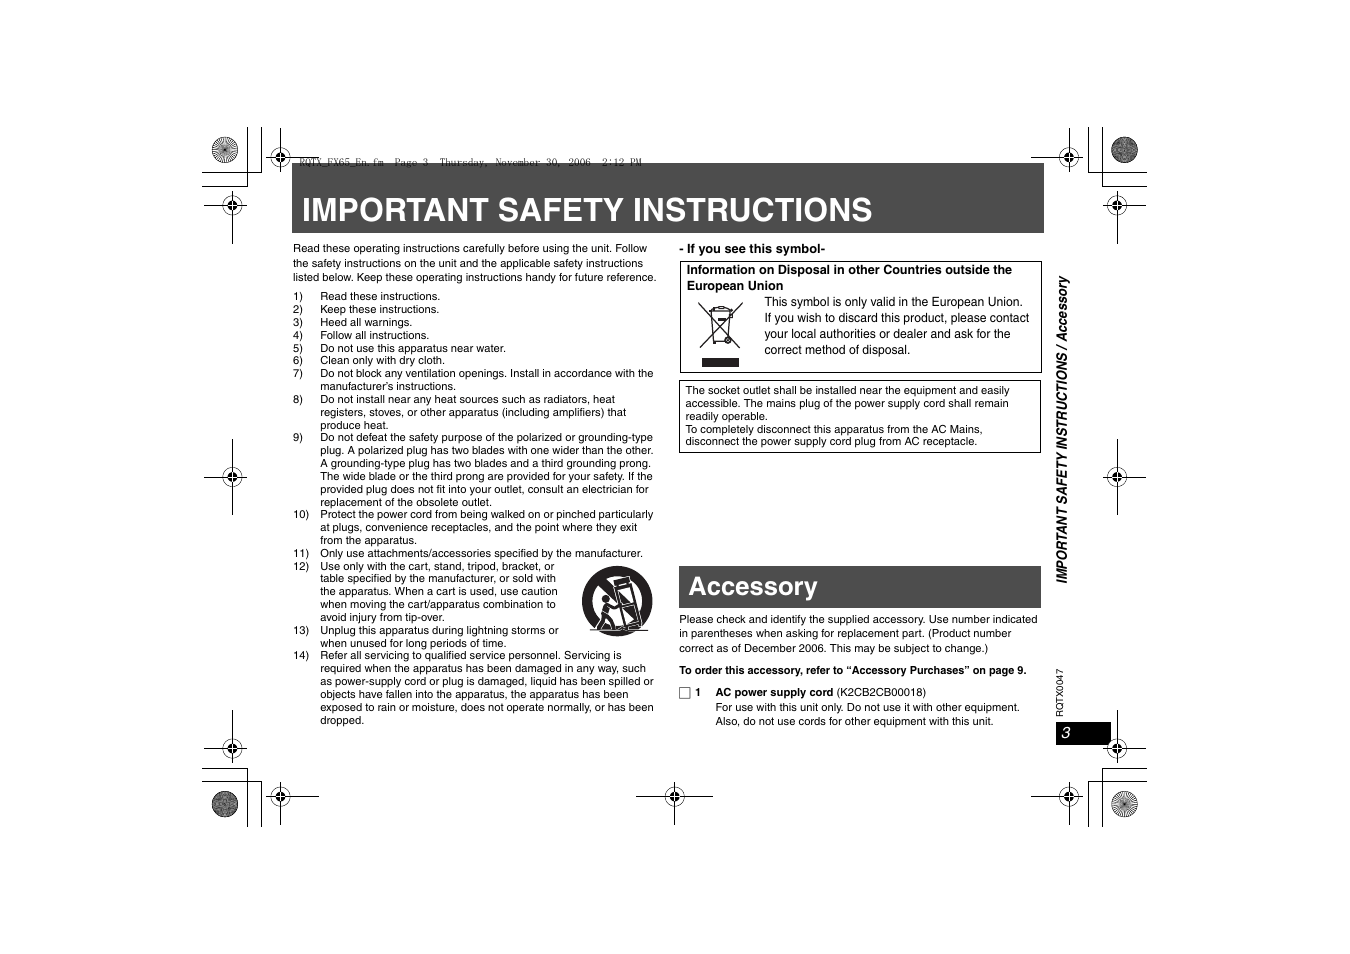 Imporant safety instructions, Accessory, Important safety